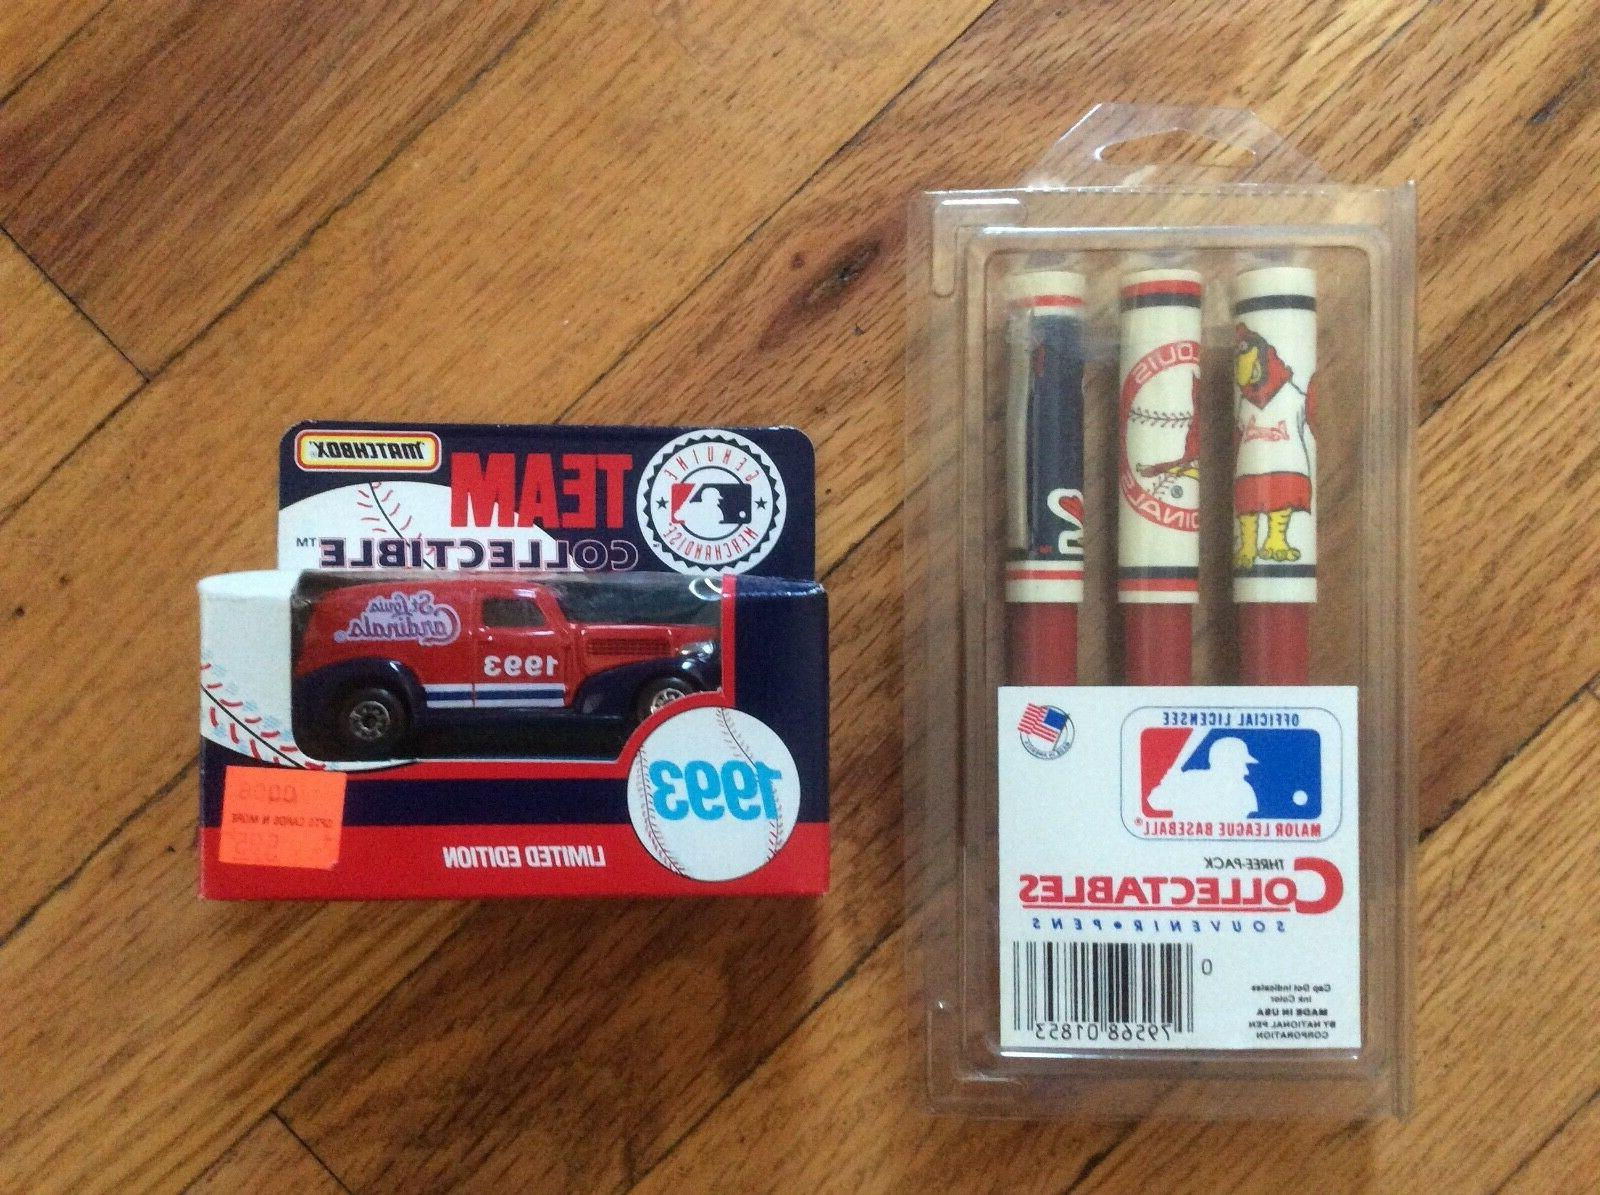 new lot of 2 st louis cardinals